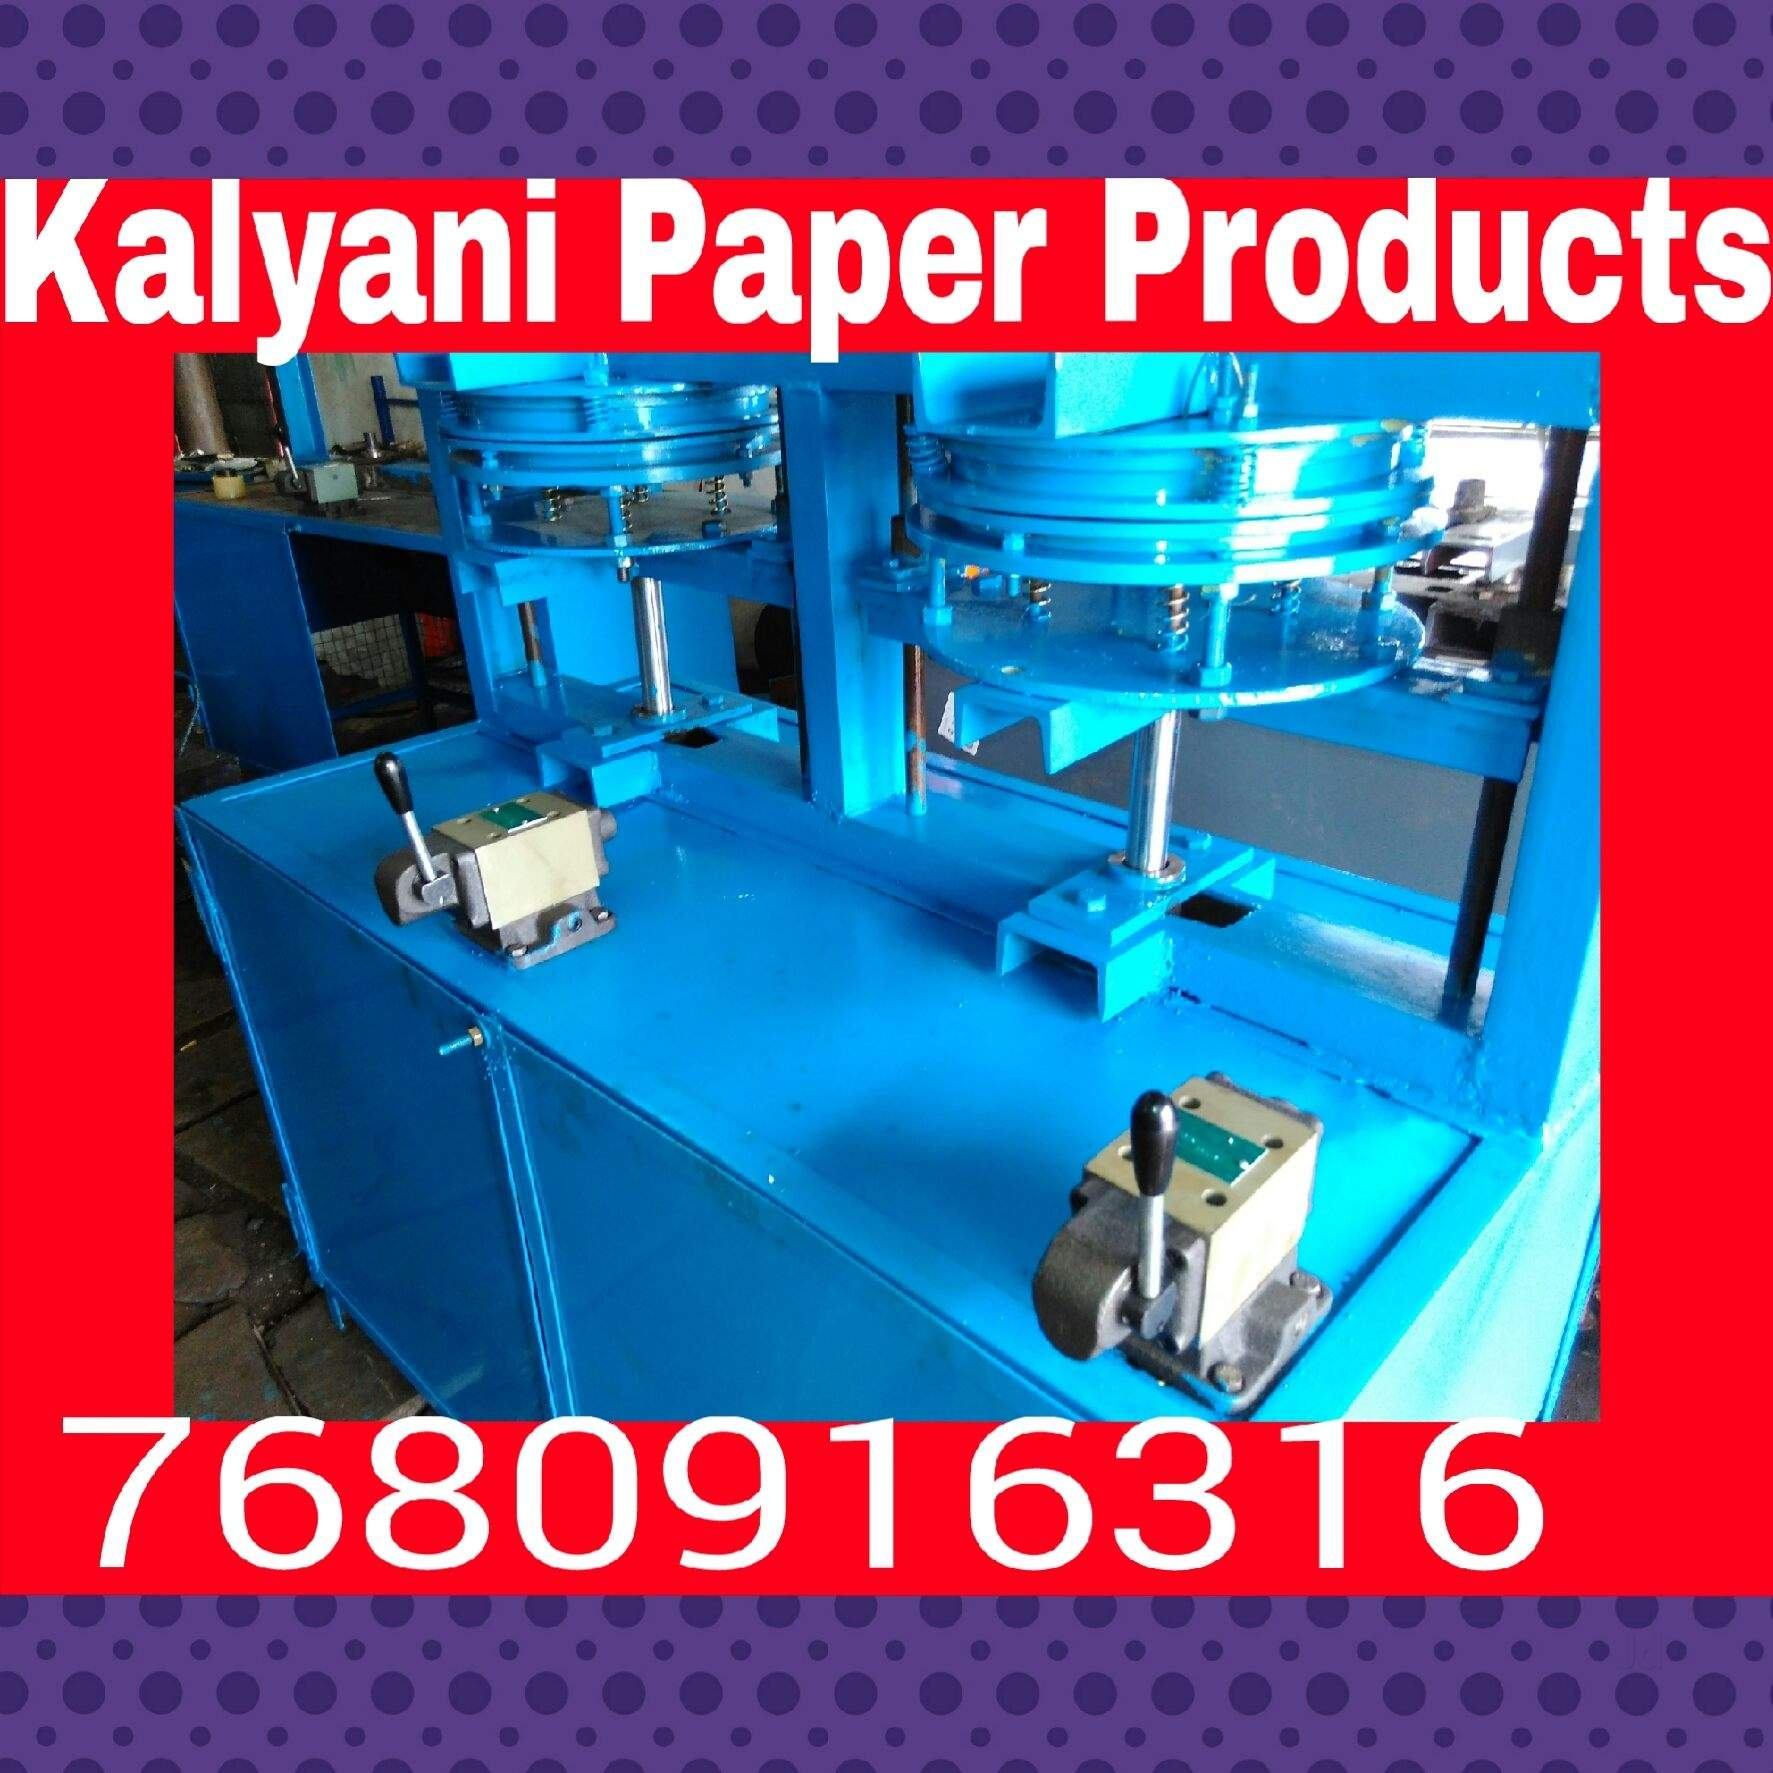 Top 100 Paper Plate Making Machine Dealers in Kukatpally - Best